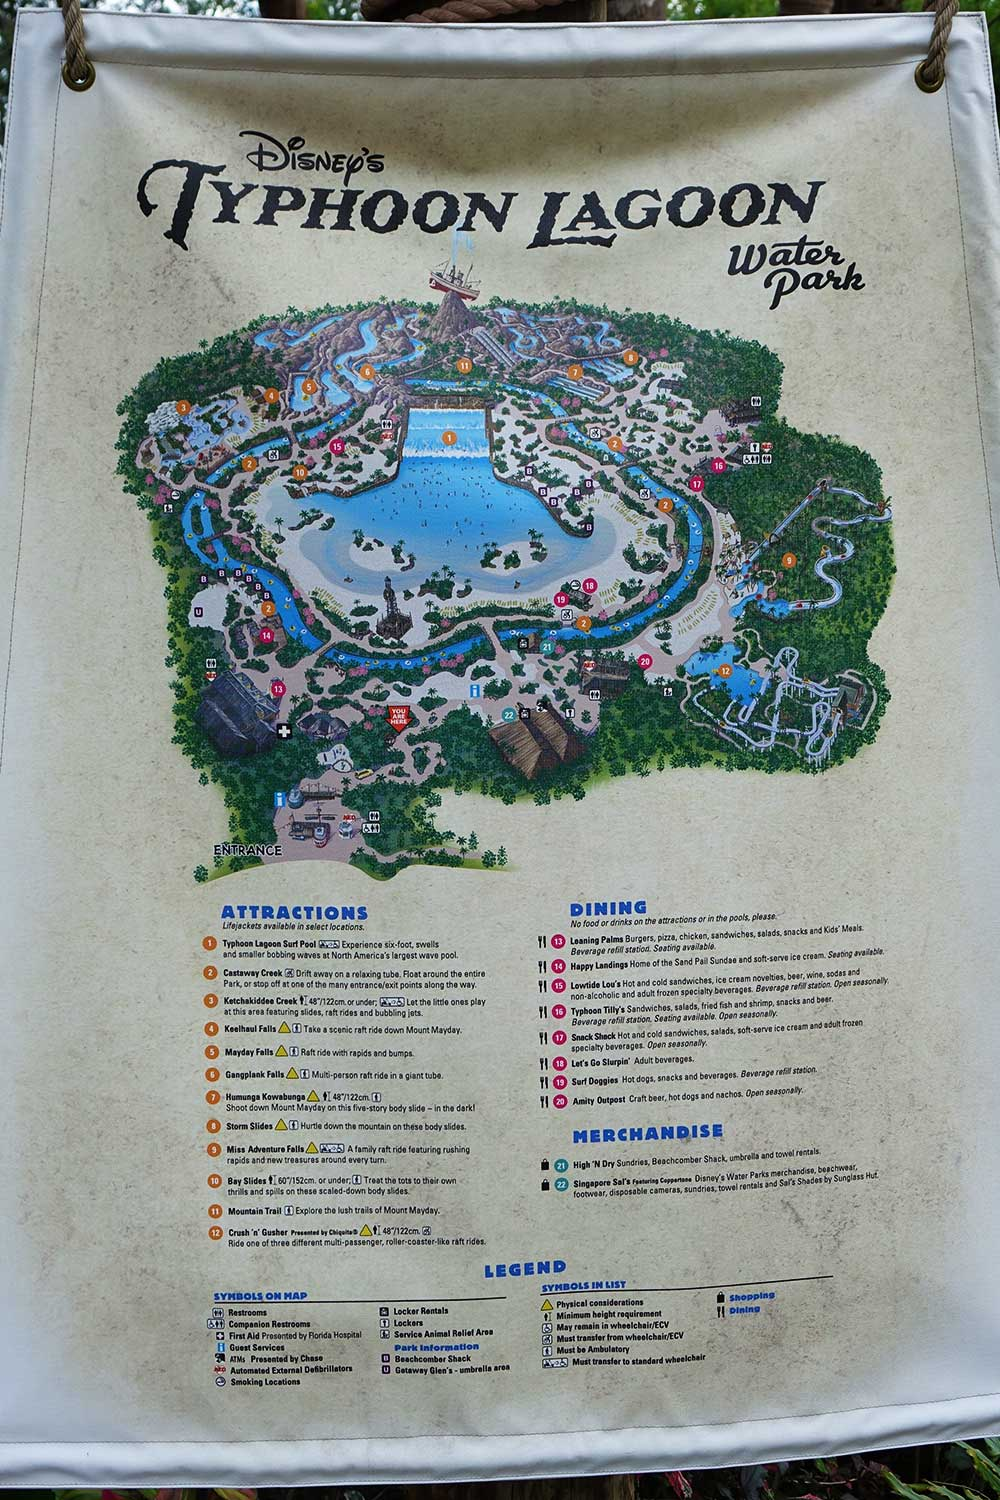 Disney's Typhoon Lagoon Water Park - Map